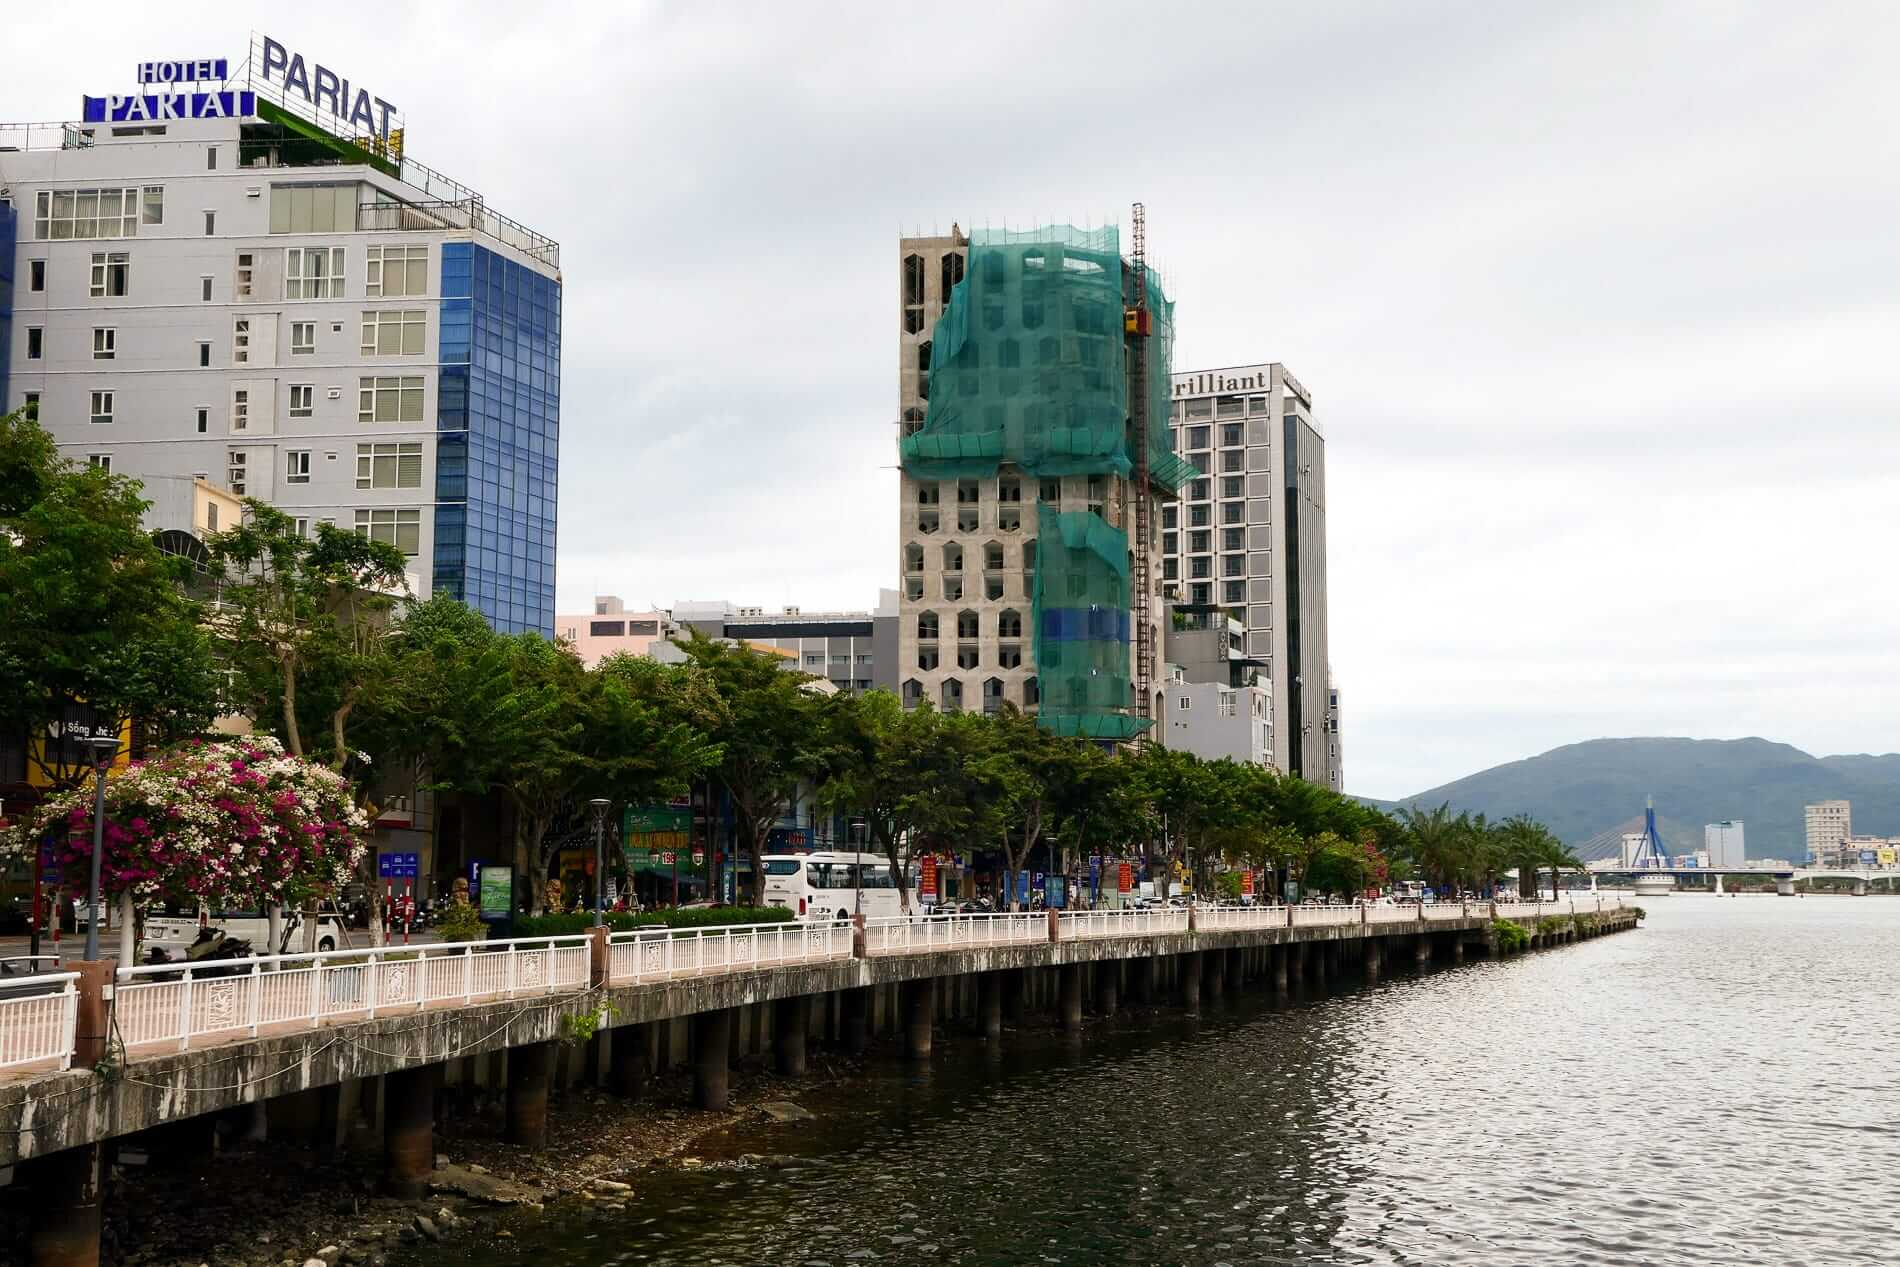 Pariat Hotel - where to stay in Da Nang